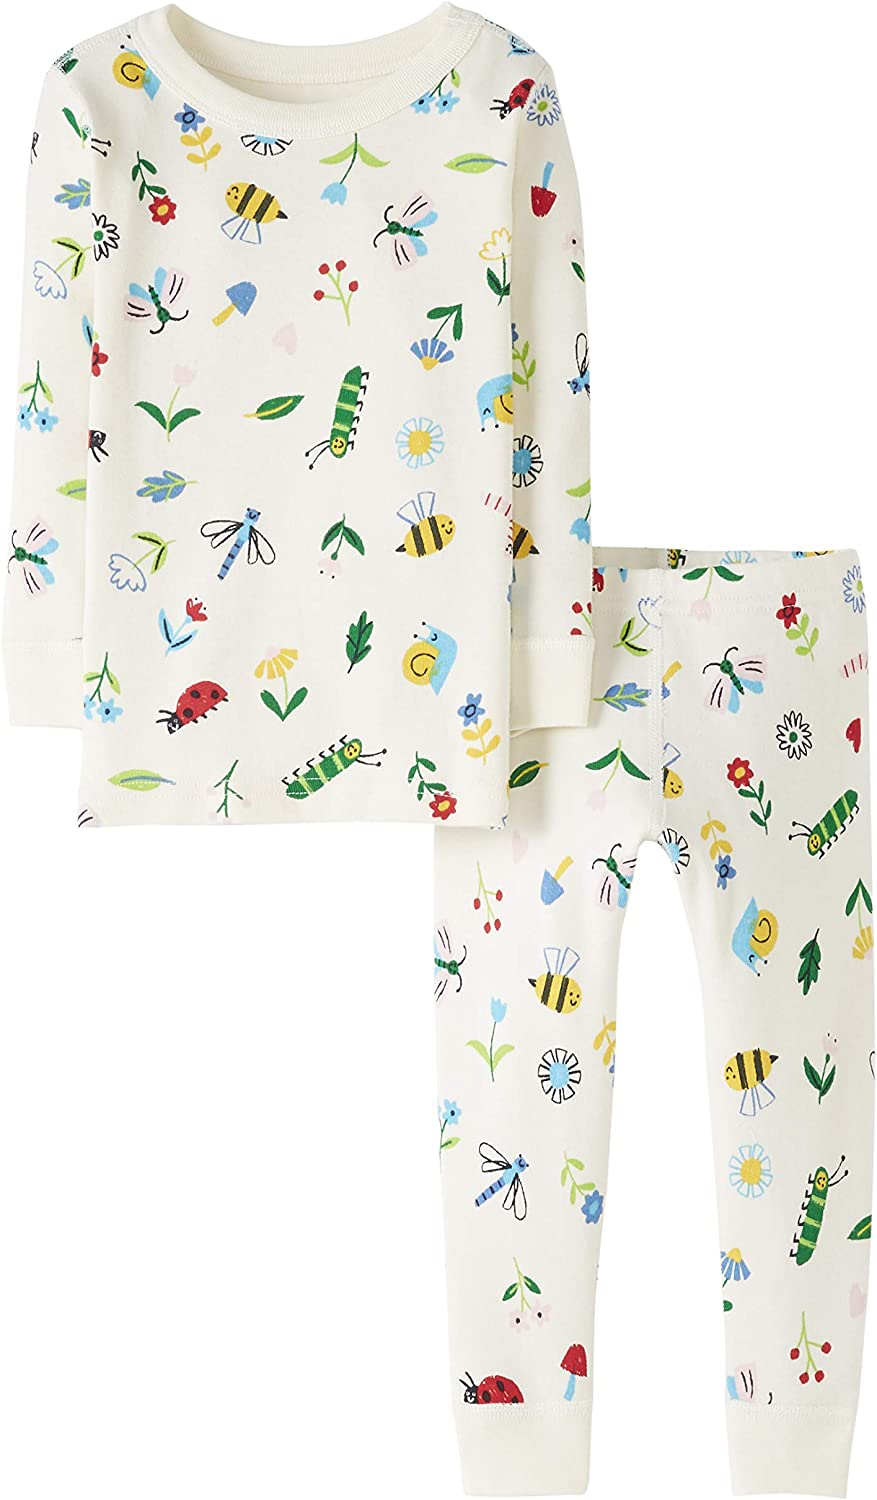 18-24 mos Flowers /& Critters Moon and Back by Hanna Andersson Baby 2 Piece Pajama Set